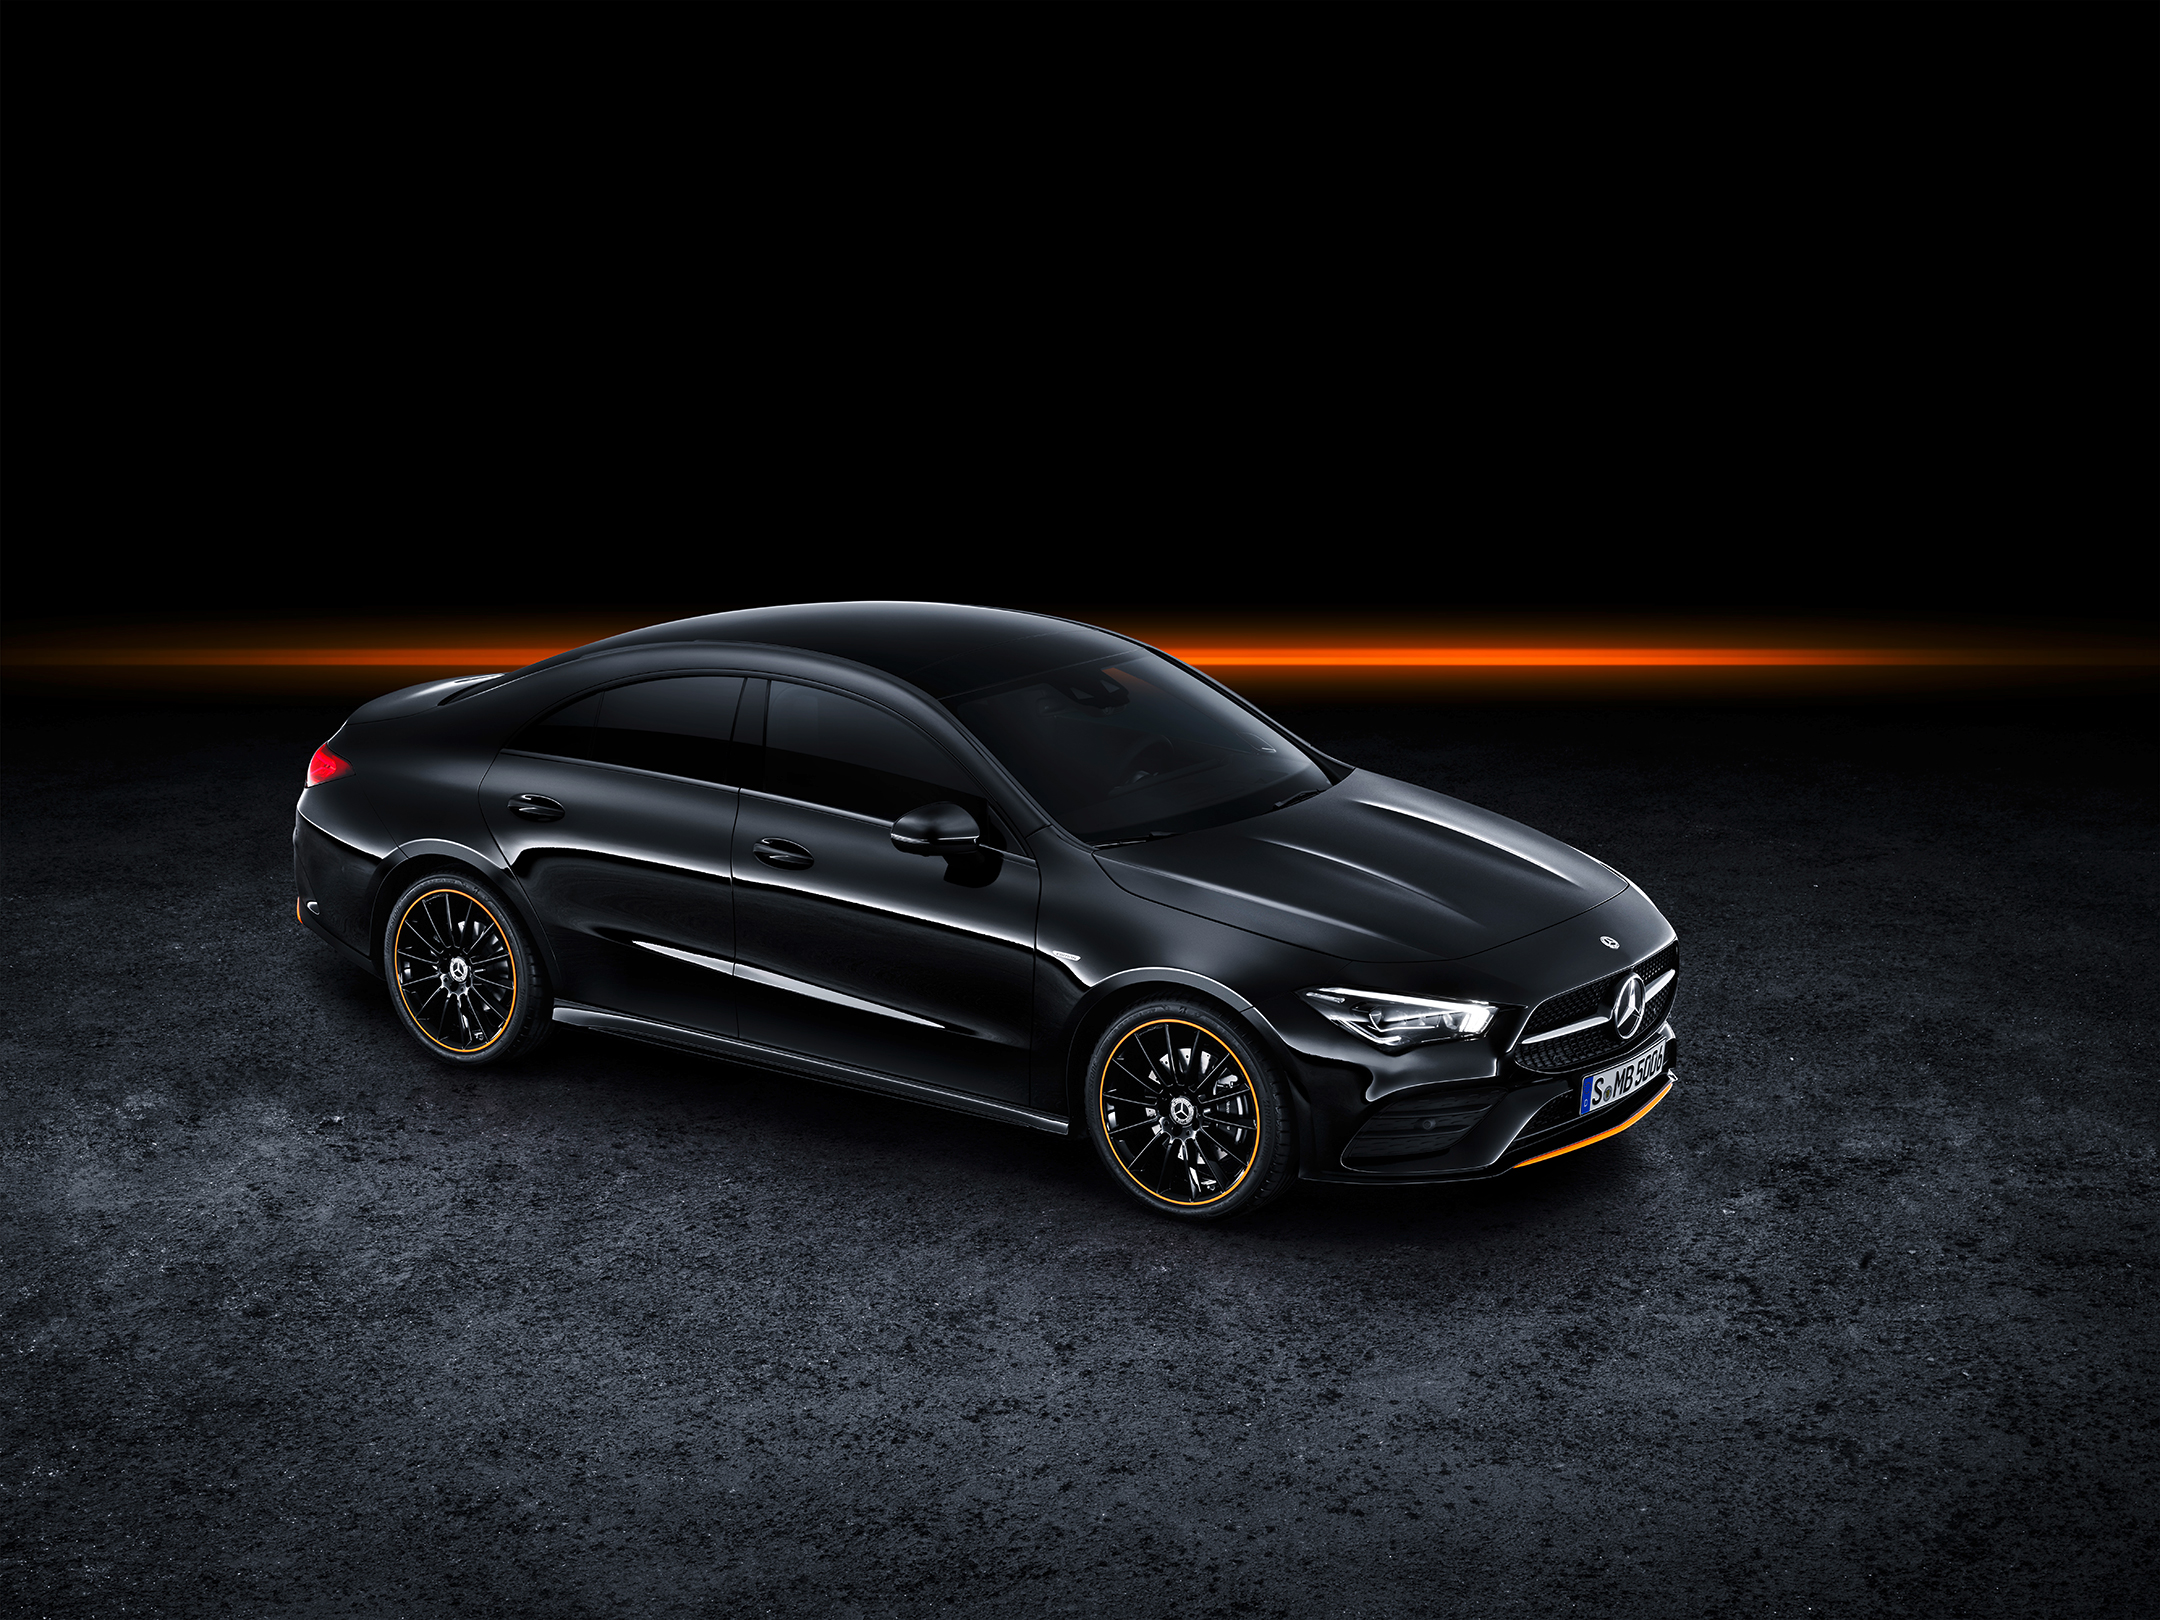 Mercedes-Benz CLA Coupe - 2019 - front side-face / profil avant - Edition 1